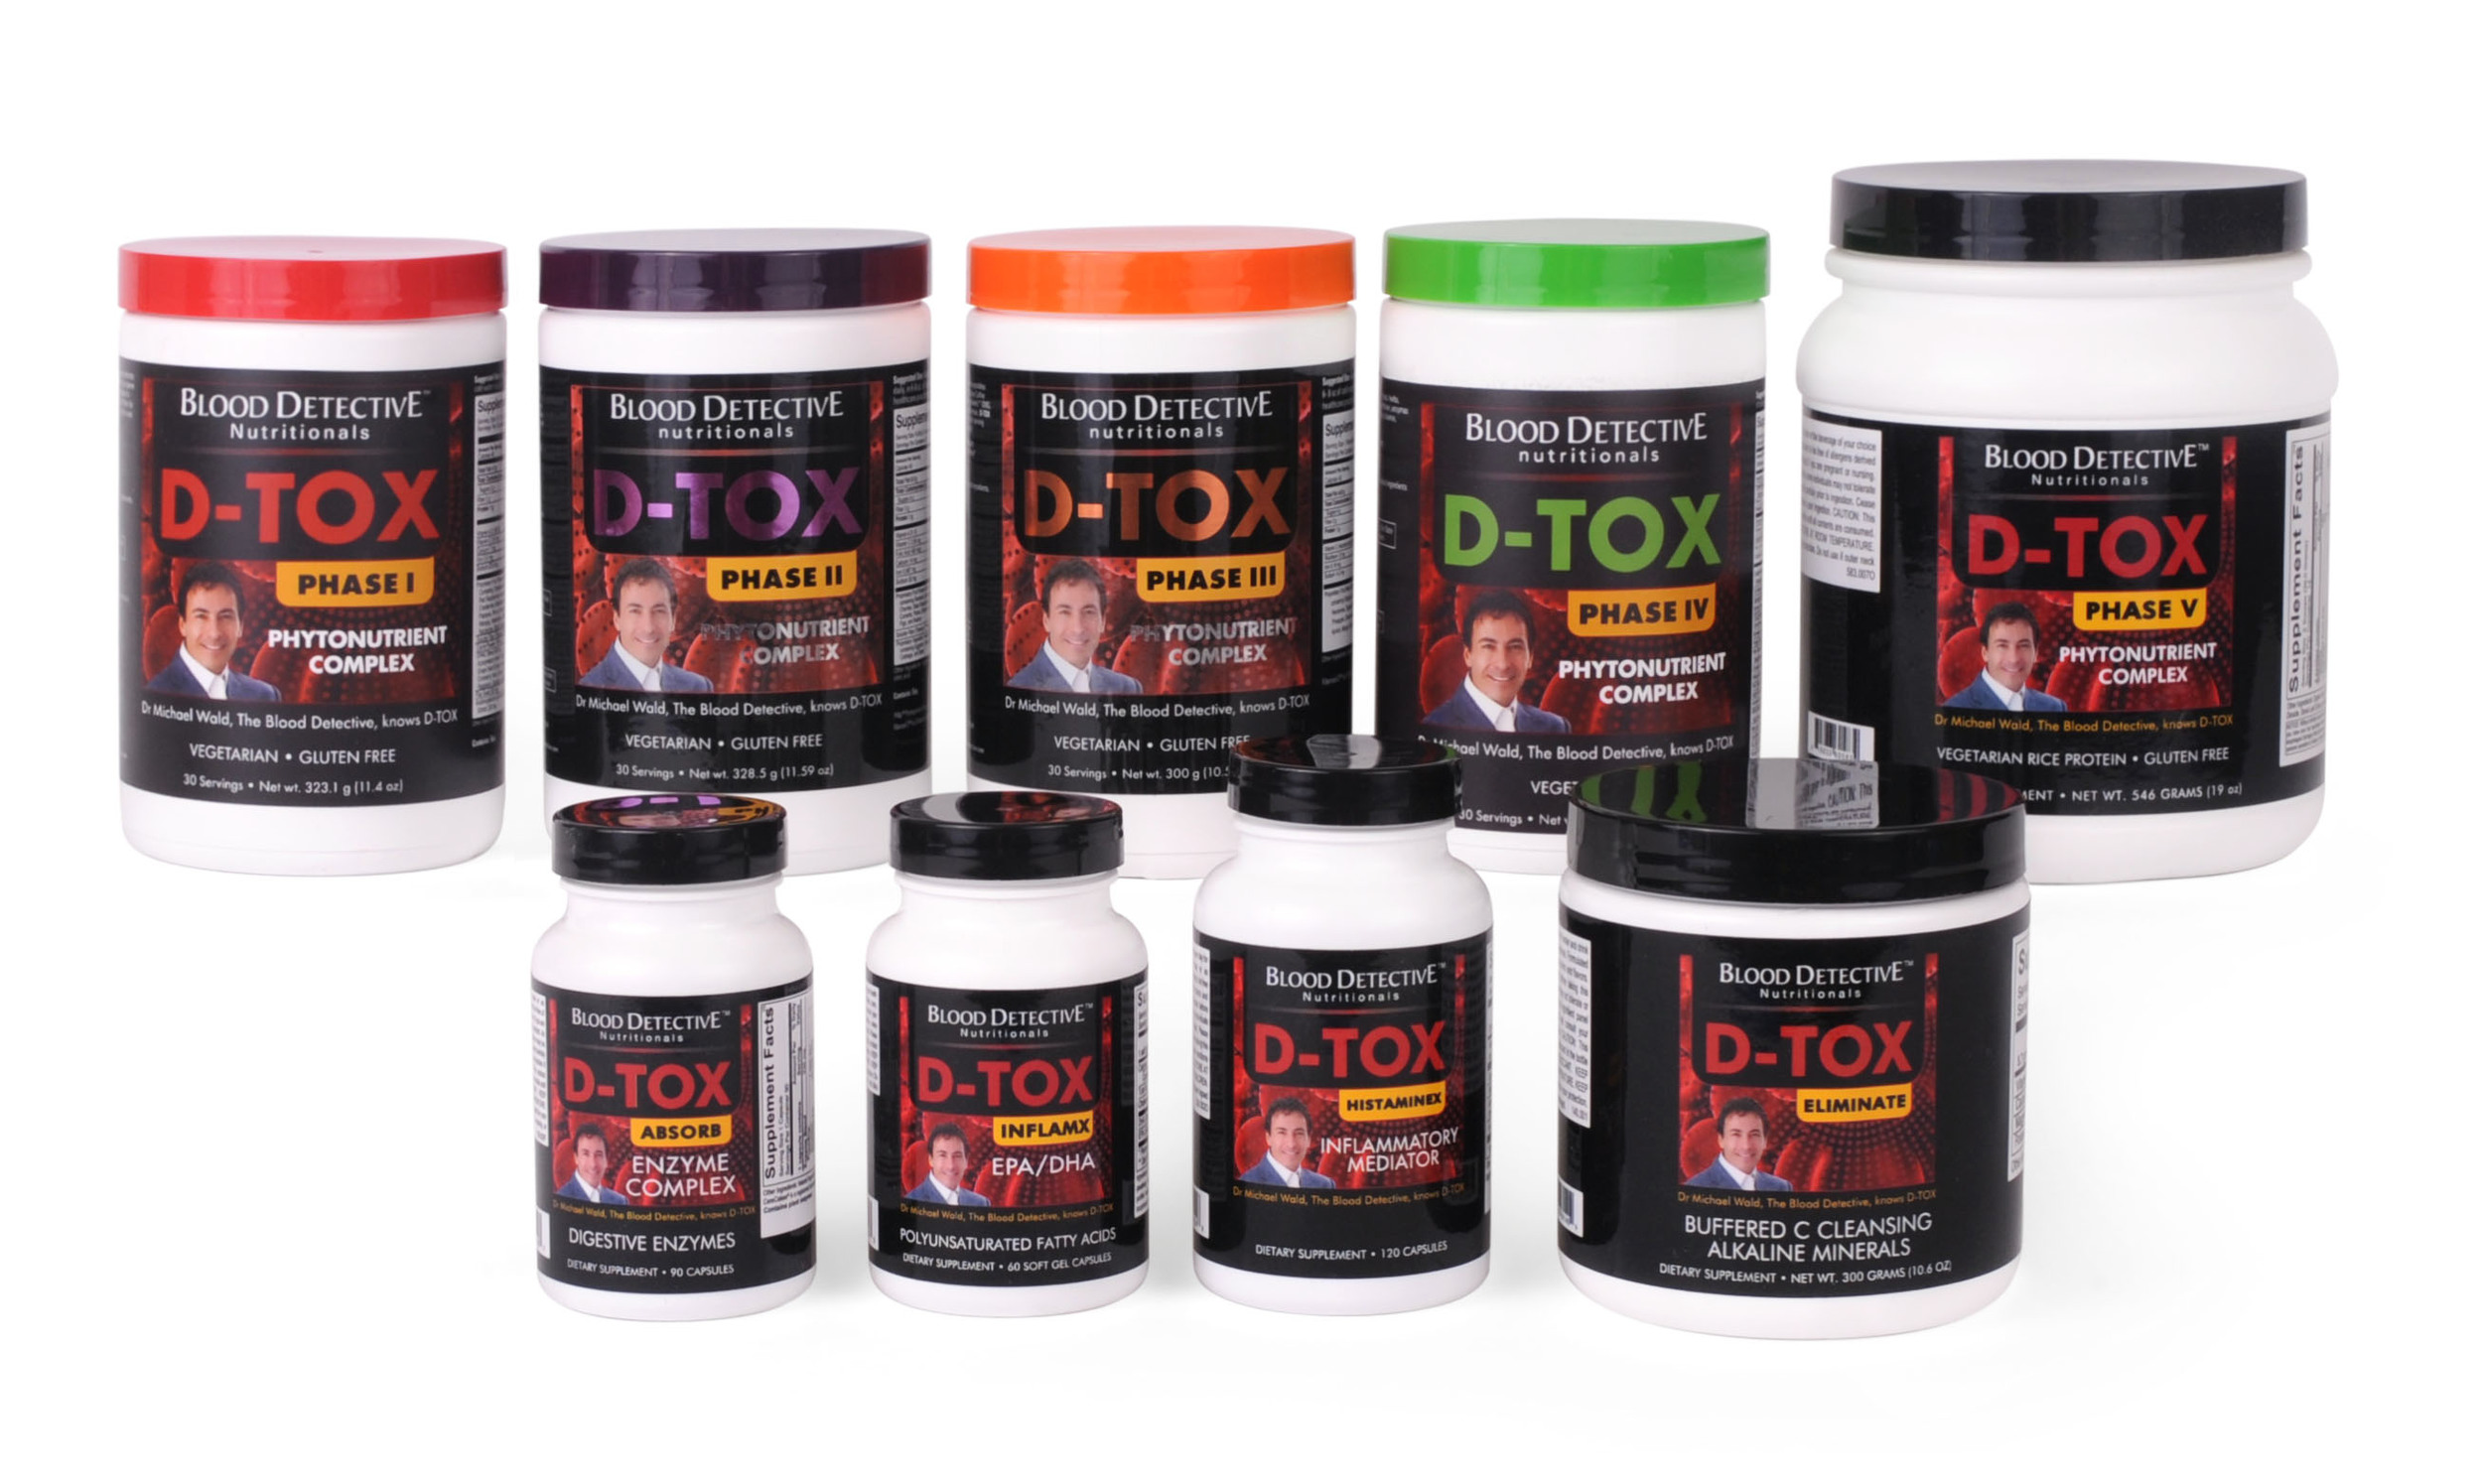 THE DTOX FAMILY - DESIGNED AND CREATED BY DR. MICHAEL WALD, THE BLOOD DETECTIVE